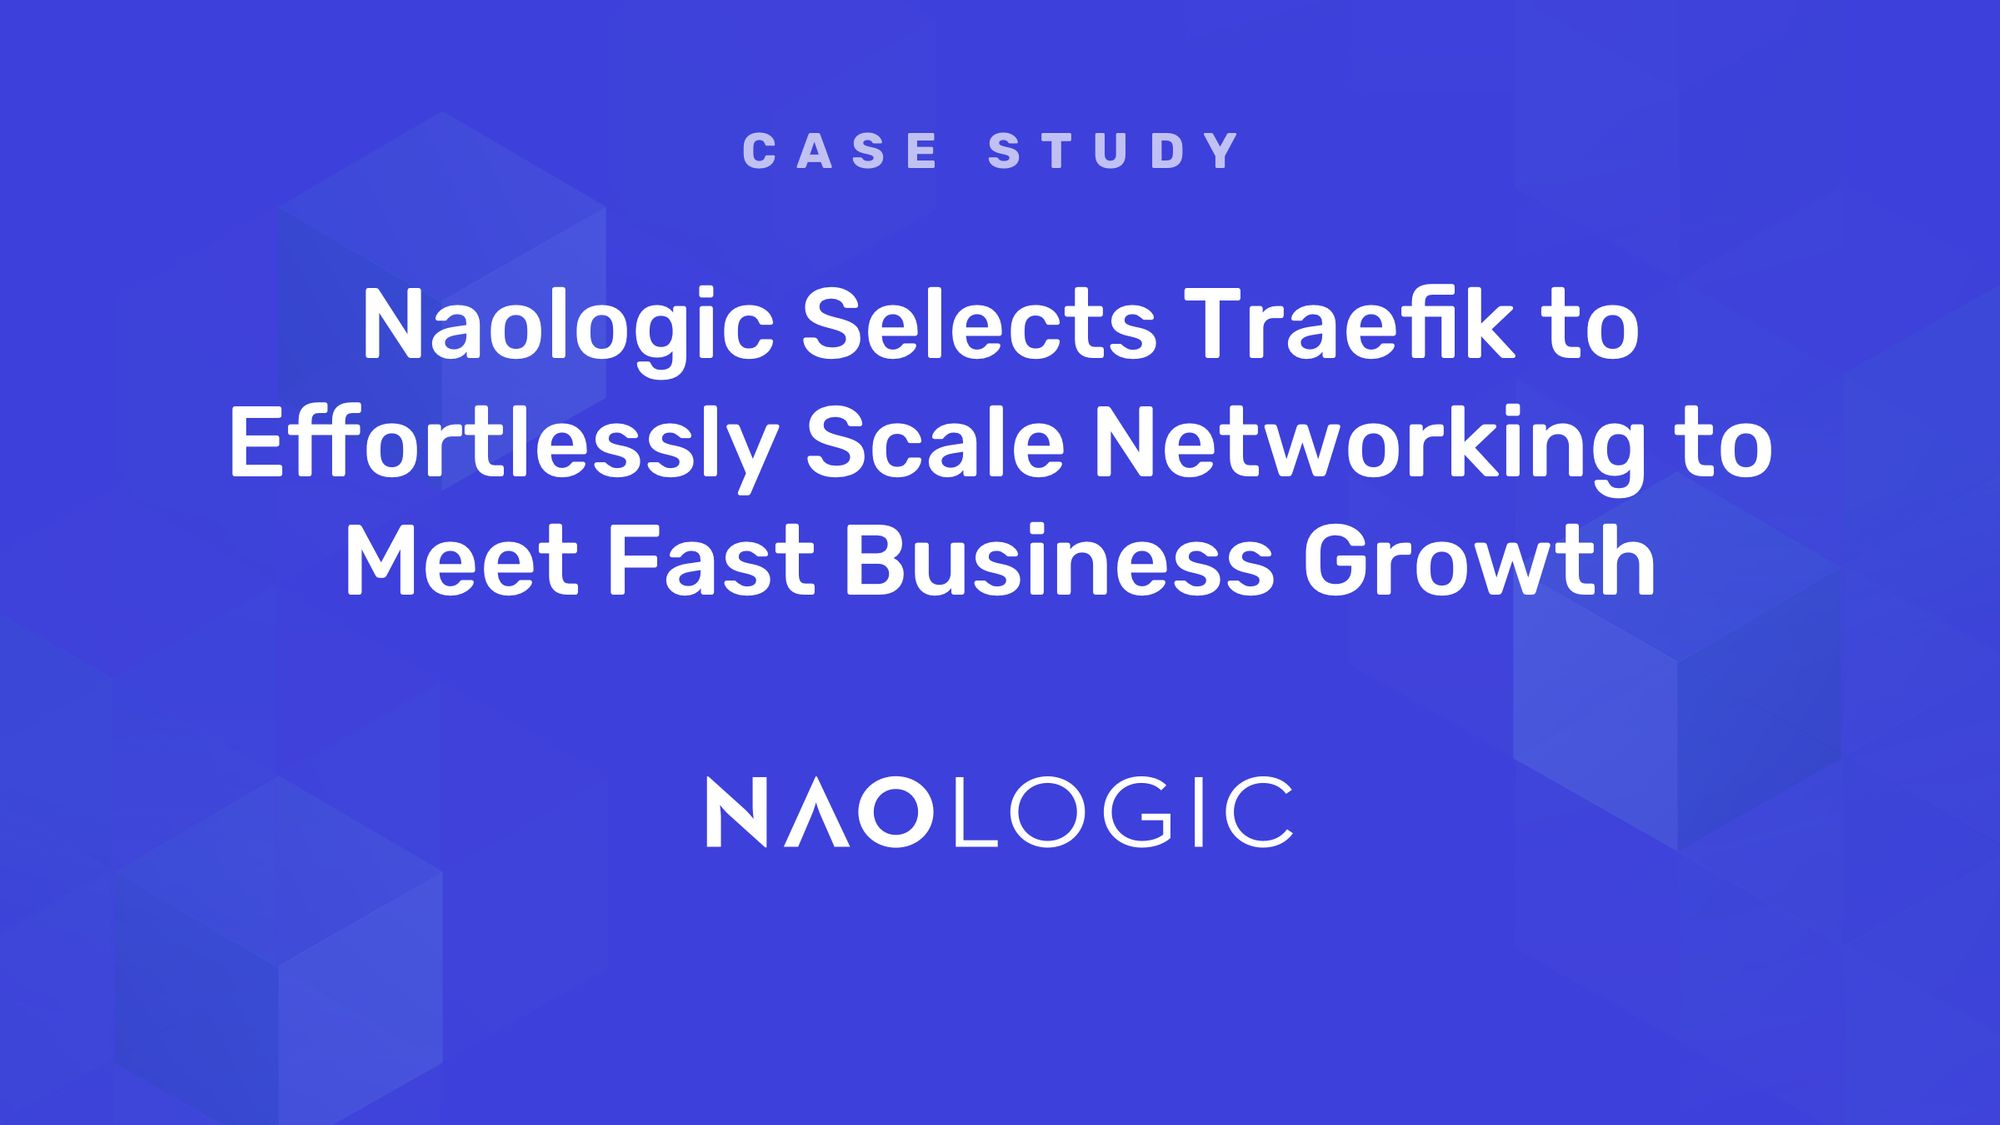 Naologic Selects Traefik to Effortlessly Scale Networking to Meet Fast Business Growth